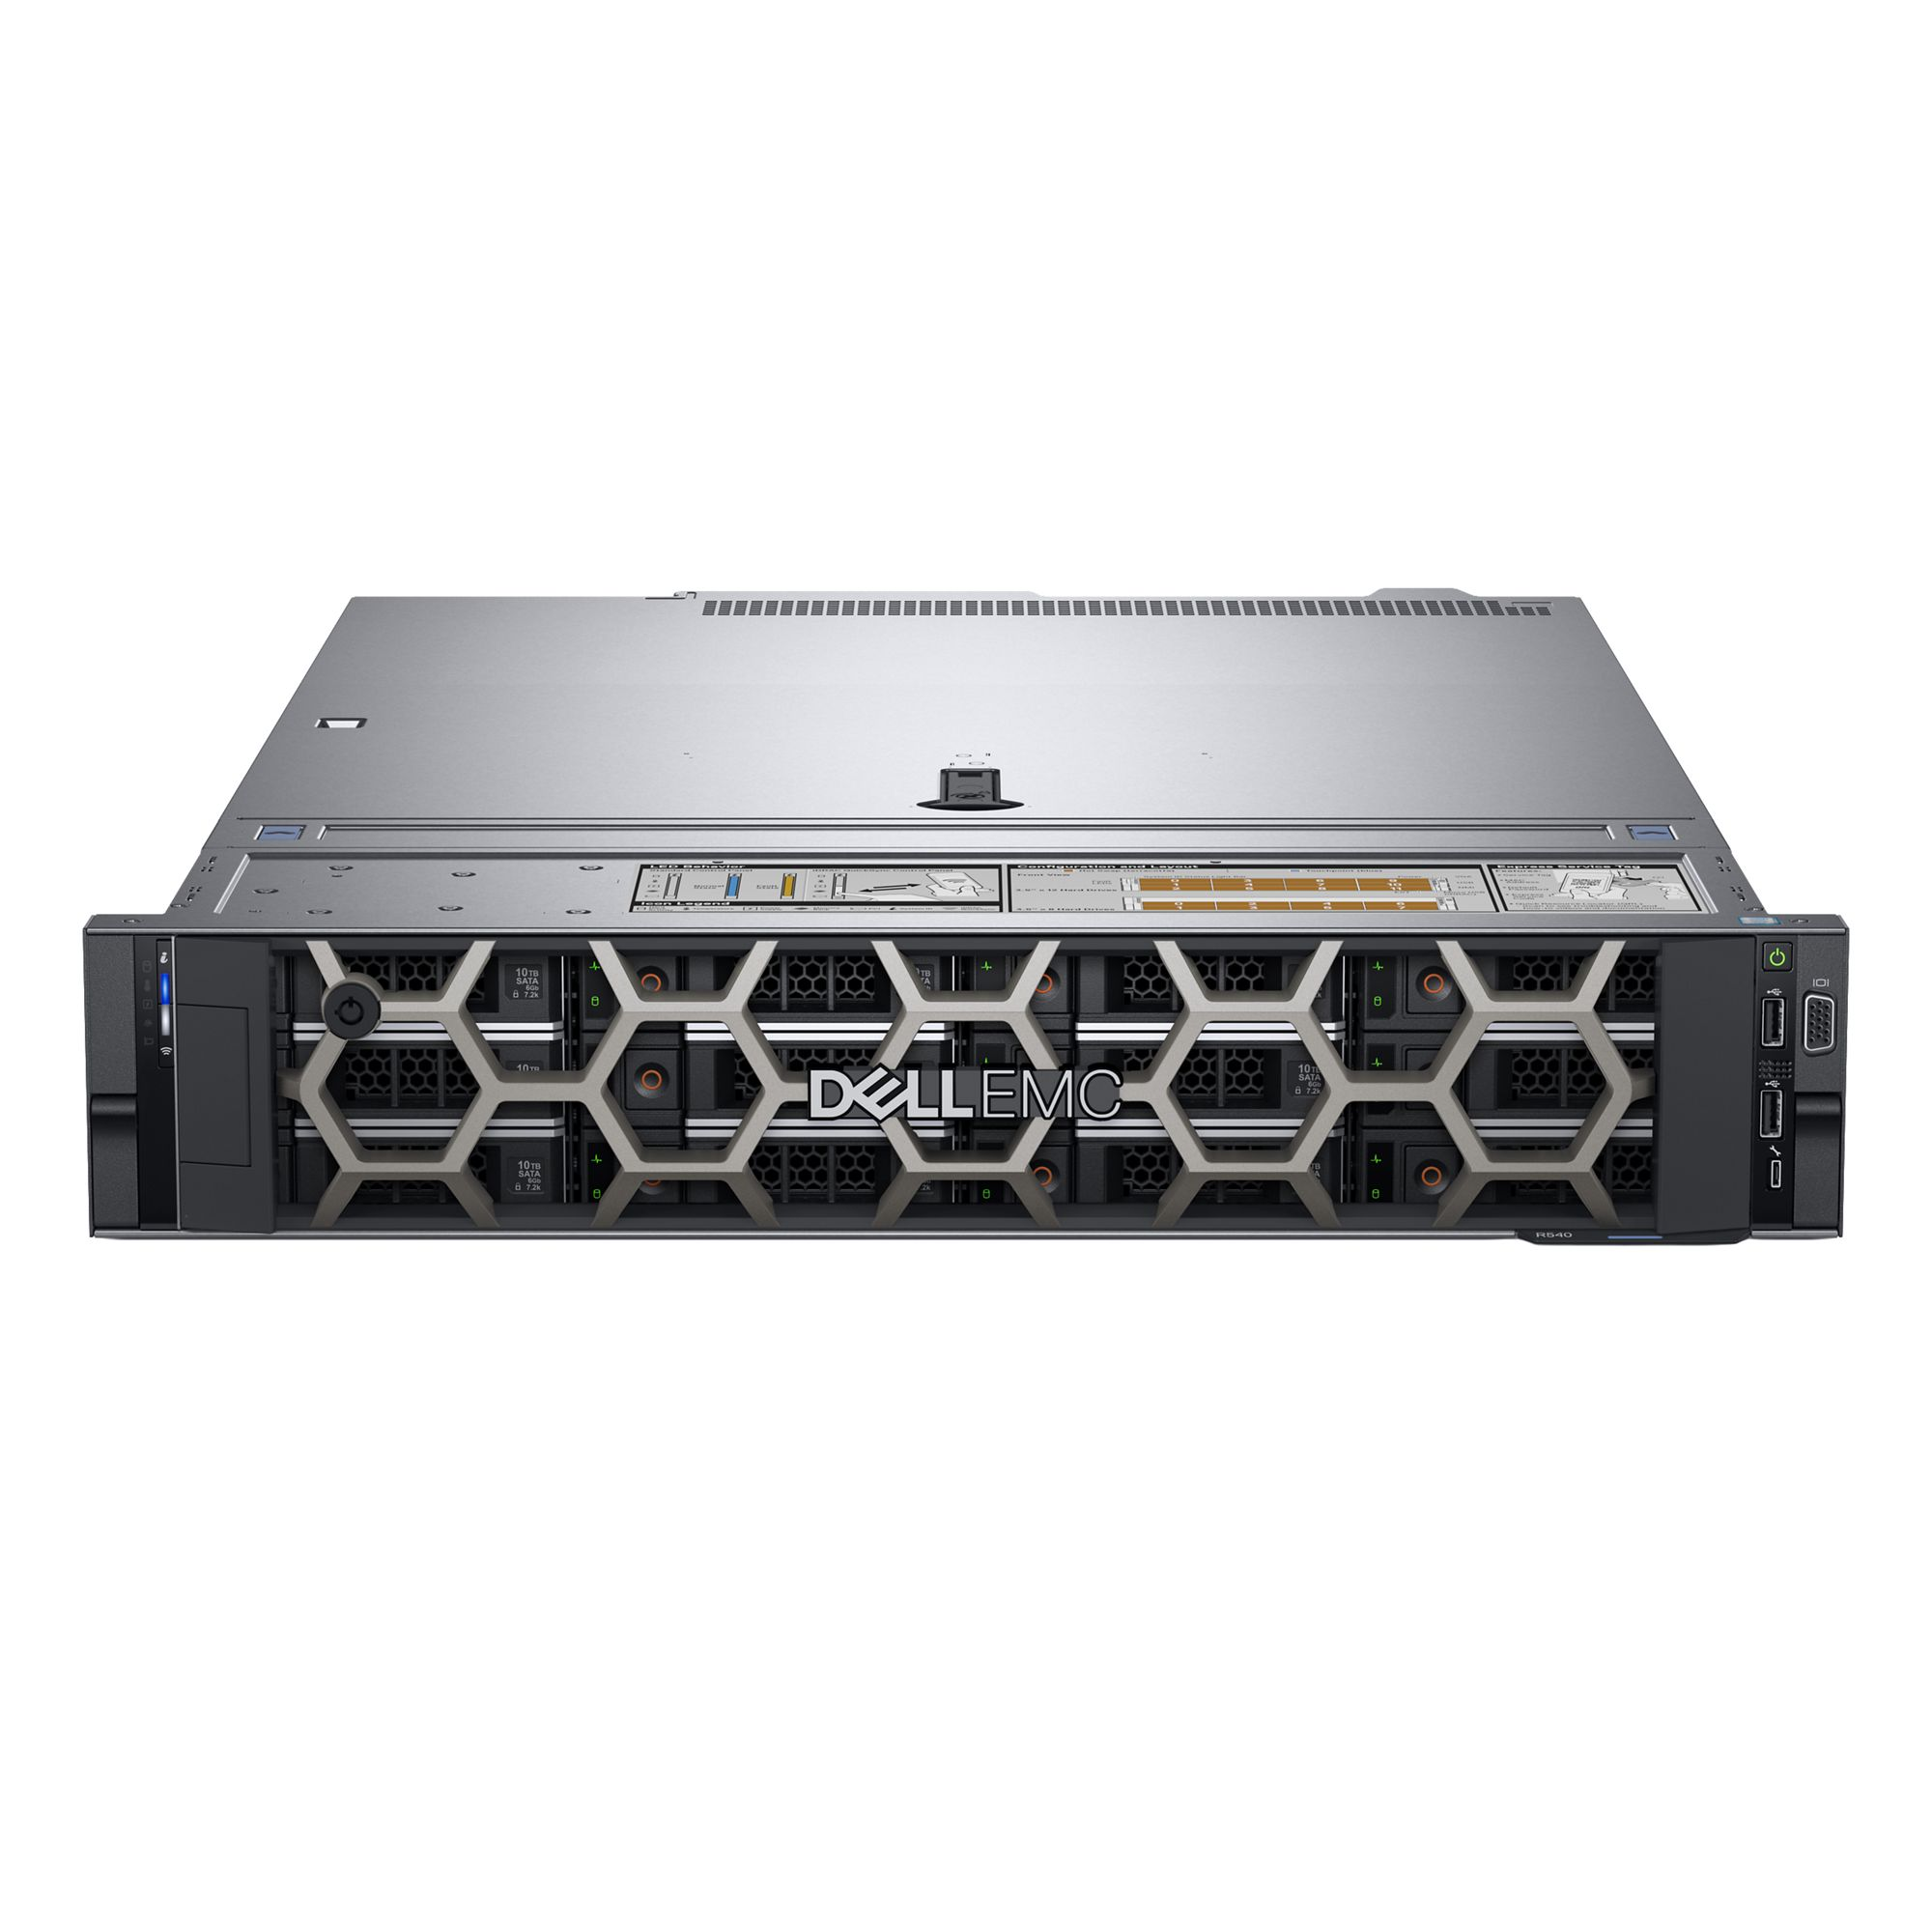 Zestaw serwer DELL PowerEdge R540 XS 4108 16GB 480GB SSD H730P iDRAC Exp. 2x 750W 3yNBD + Windows Server Standard 2019 + 2x 5 CAL